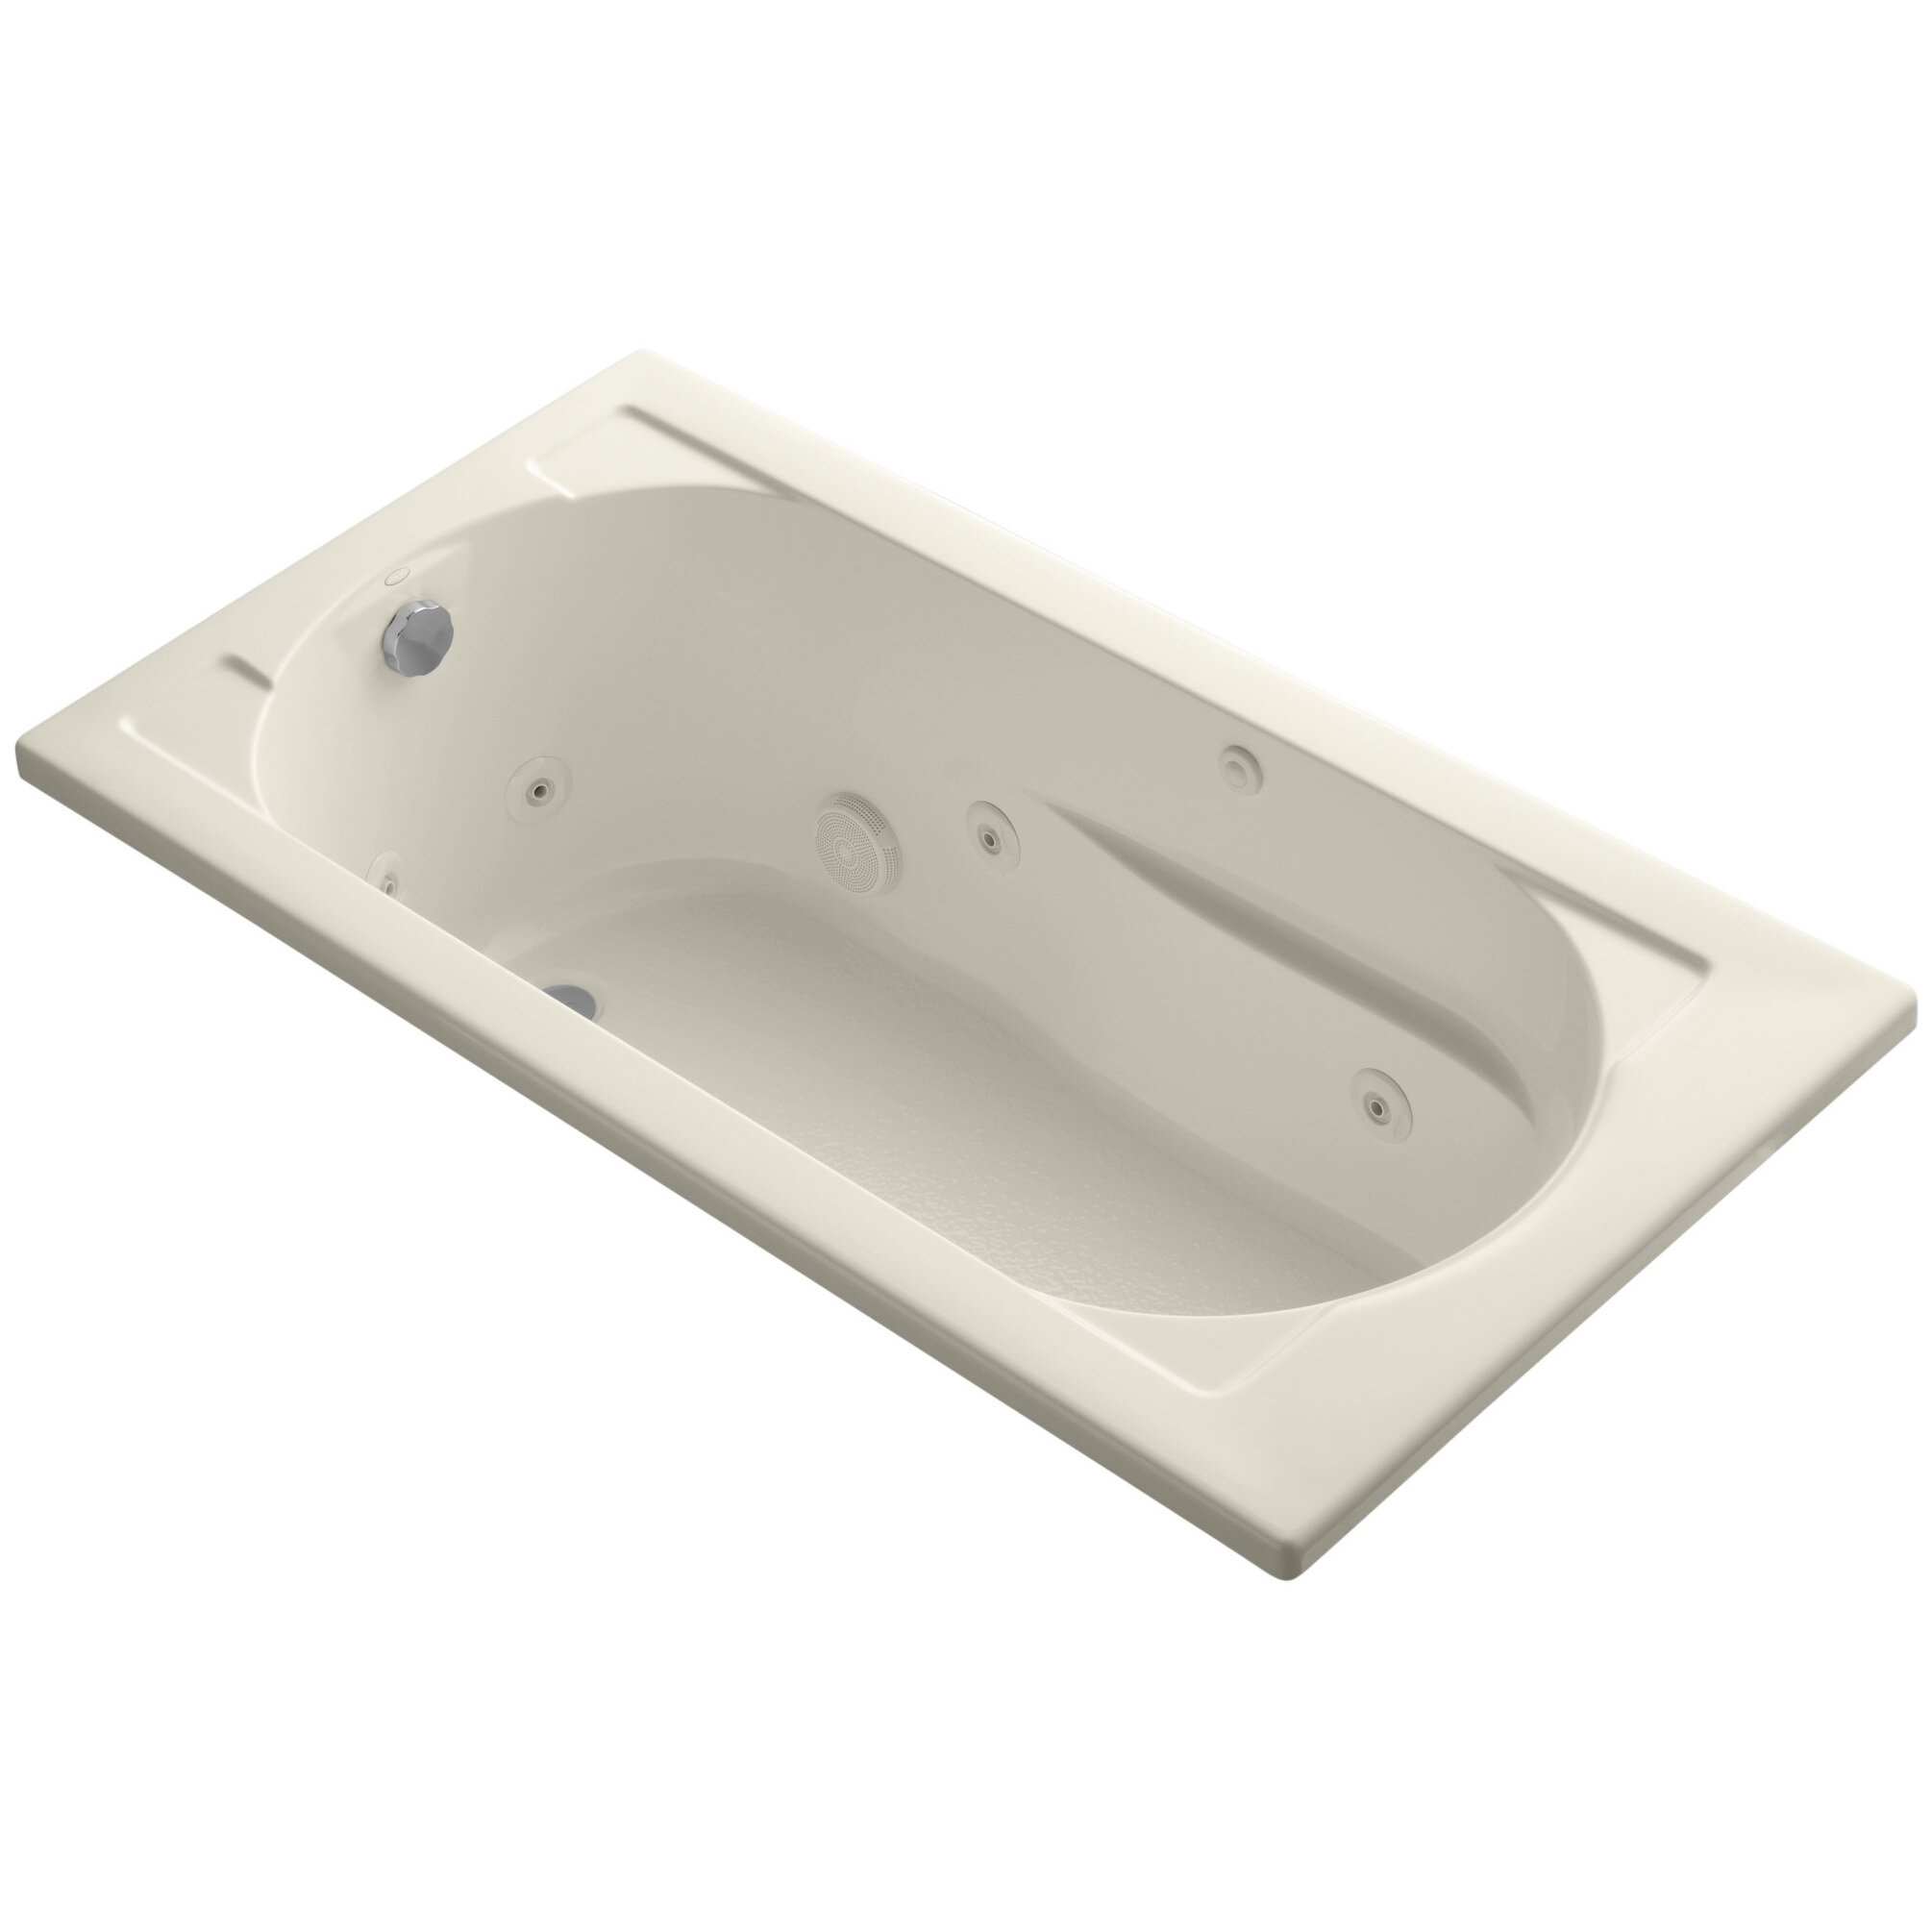 Kohler devonshire 60 x 32 whirlpool bathtub reviews wayfair - Kohler devonshire reviews ...